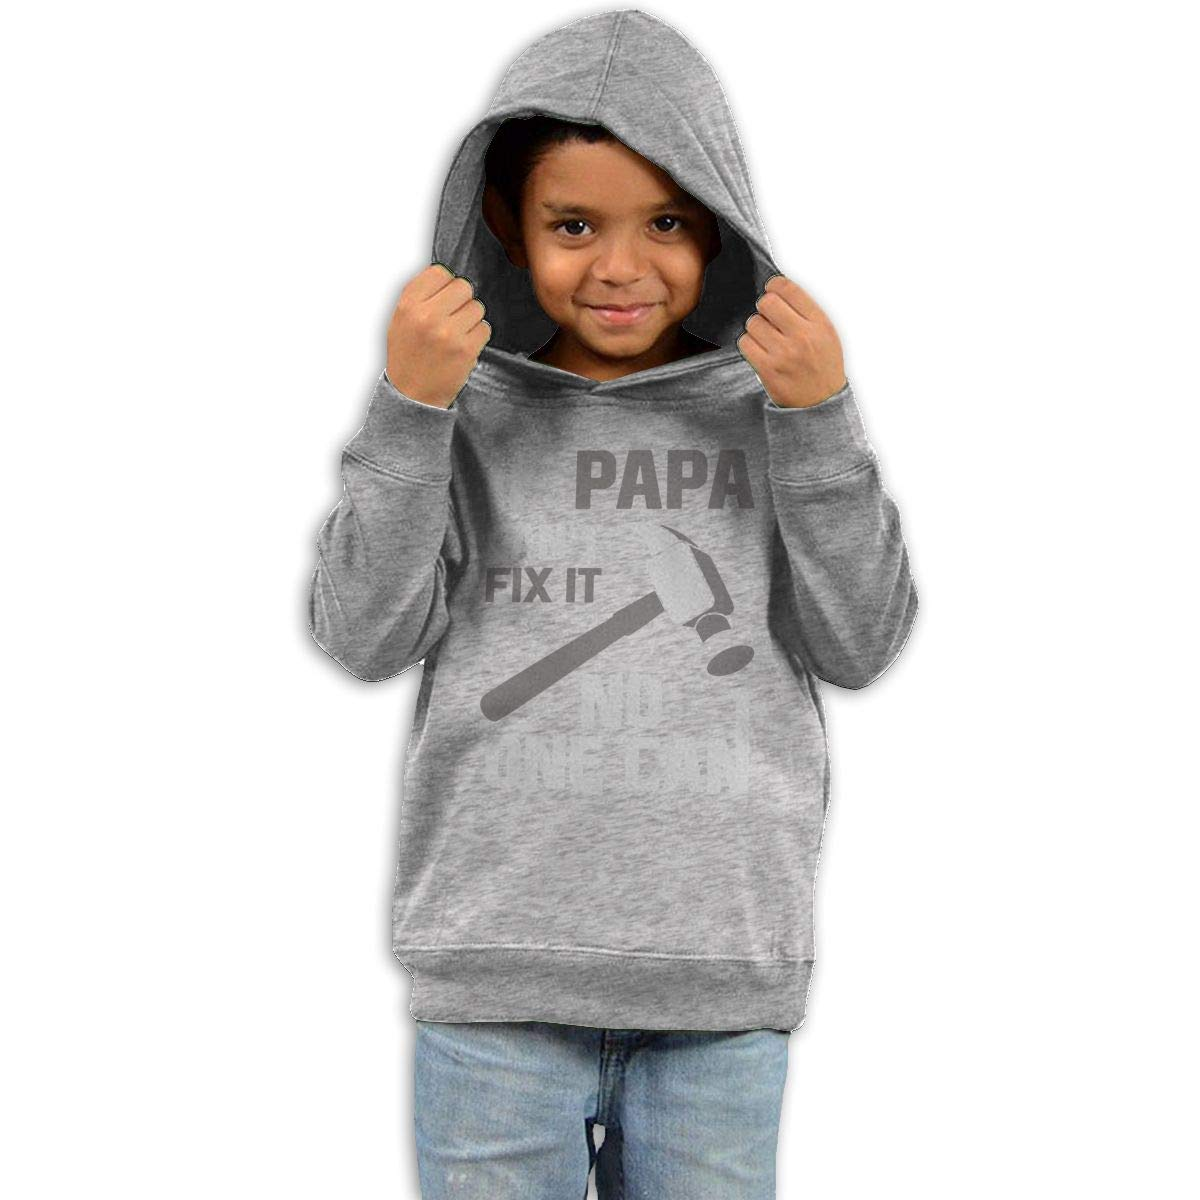 Childrens Hooded Sweater If PAPA Cant Fix It No One Can for Grandpa Boy Sweater Black